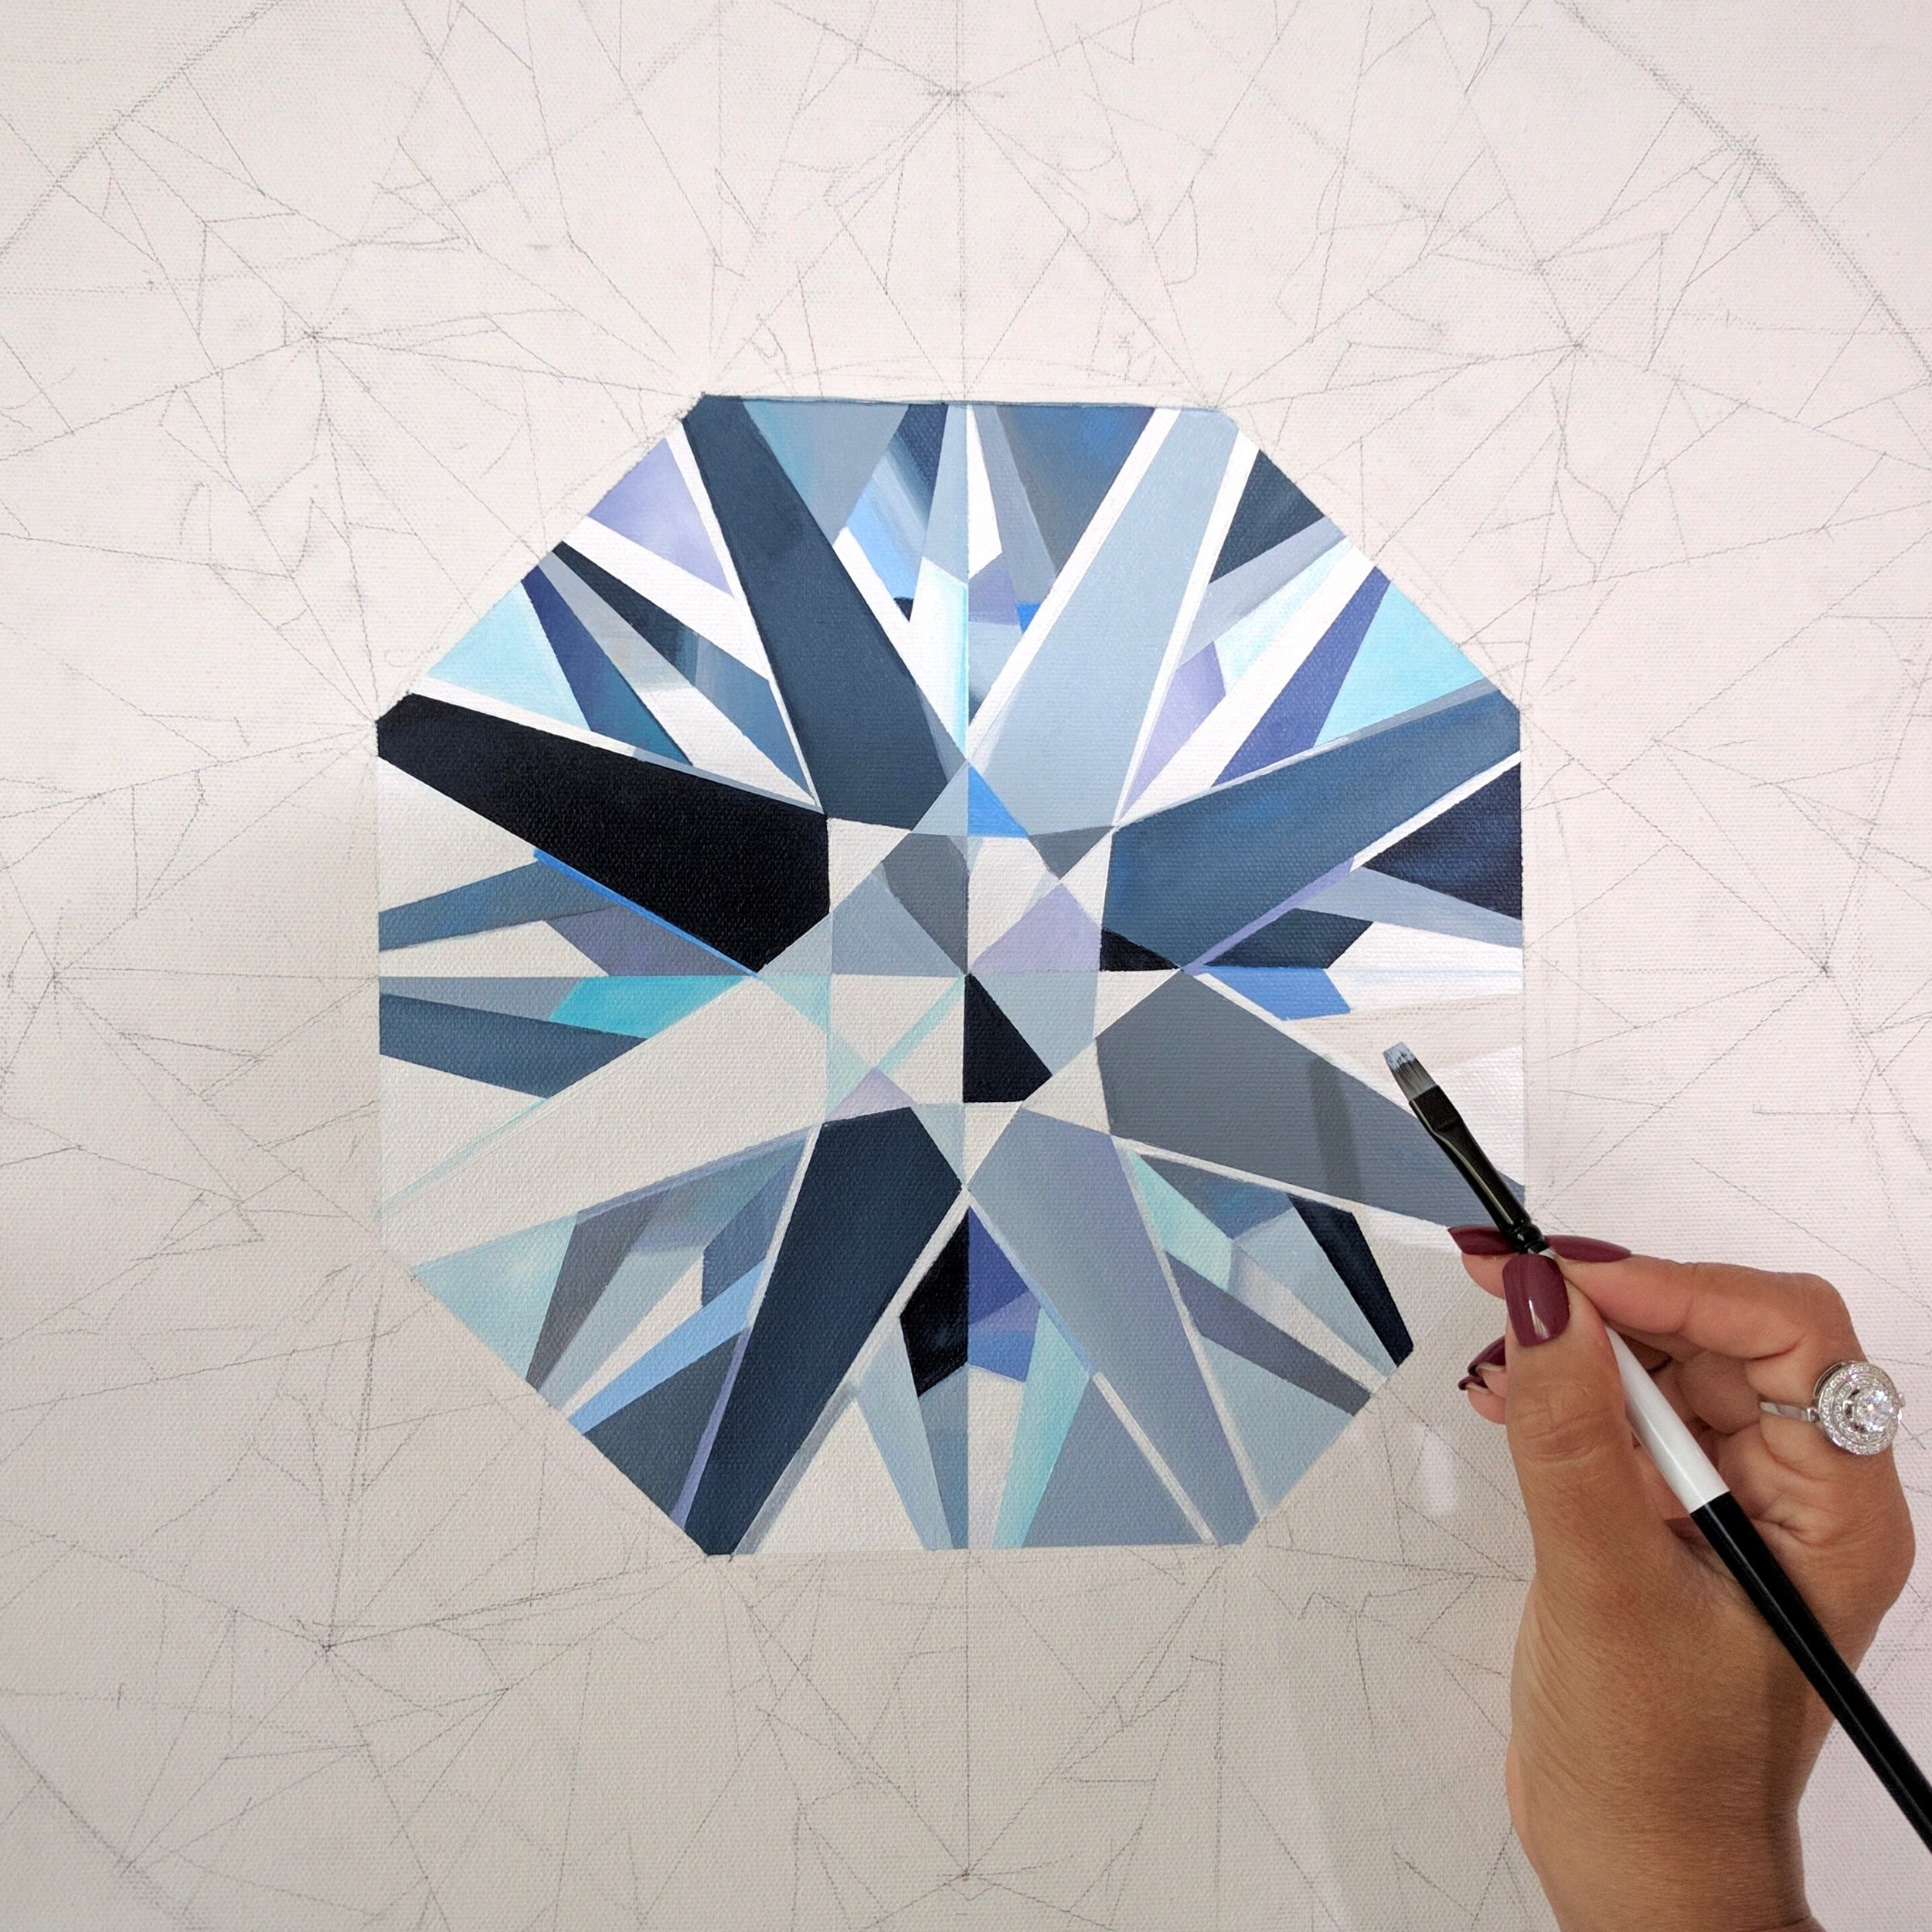 Close up detail of one of the seven round brilliant diamonds. Making of the 4-feet Coronet Diamond Painting by Reena Ahluwalia. ©Reena Ahluwalia